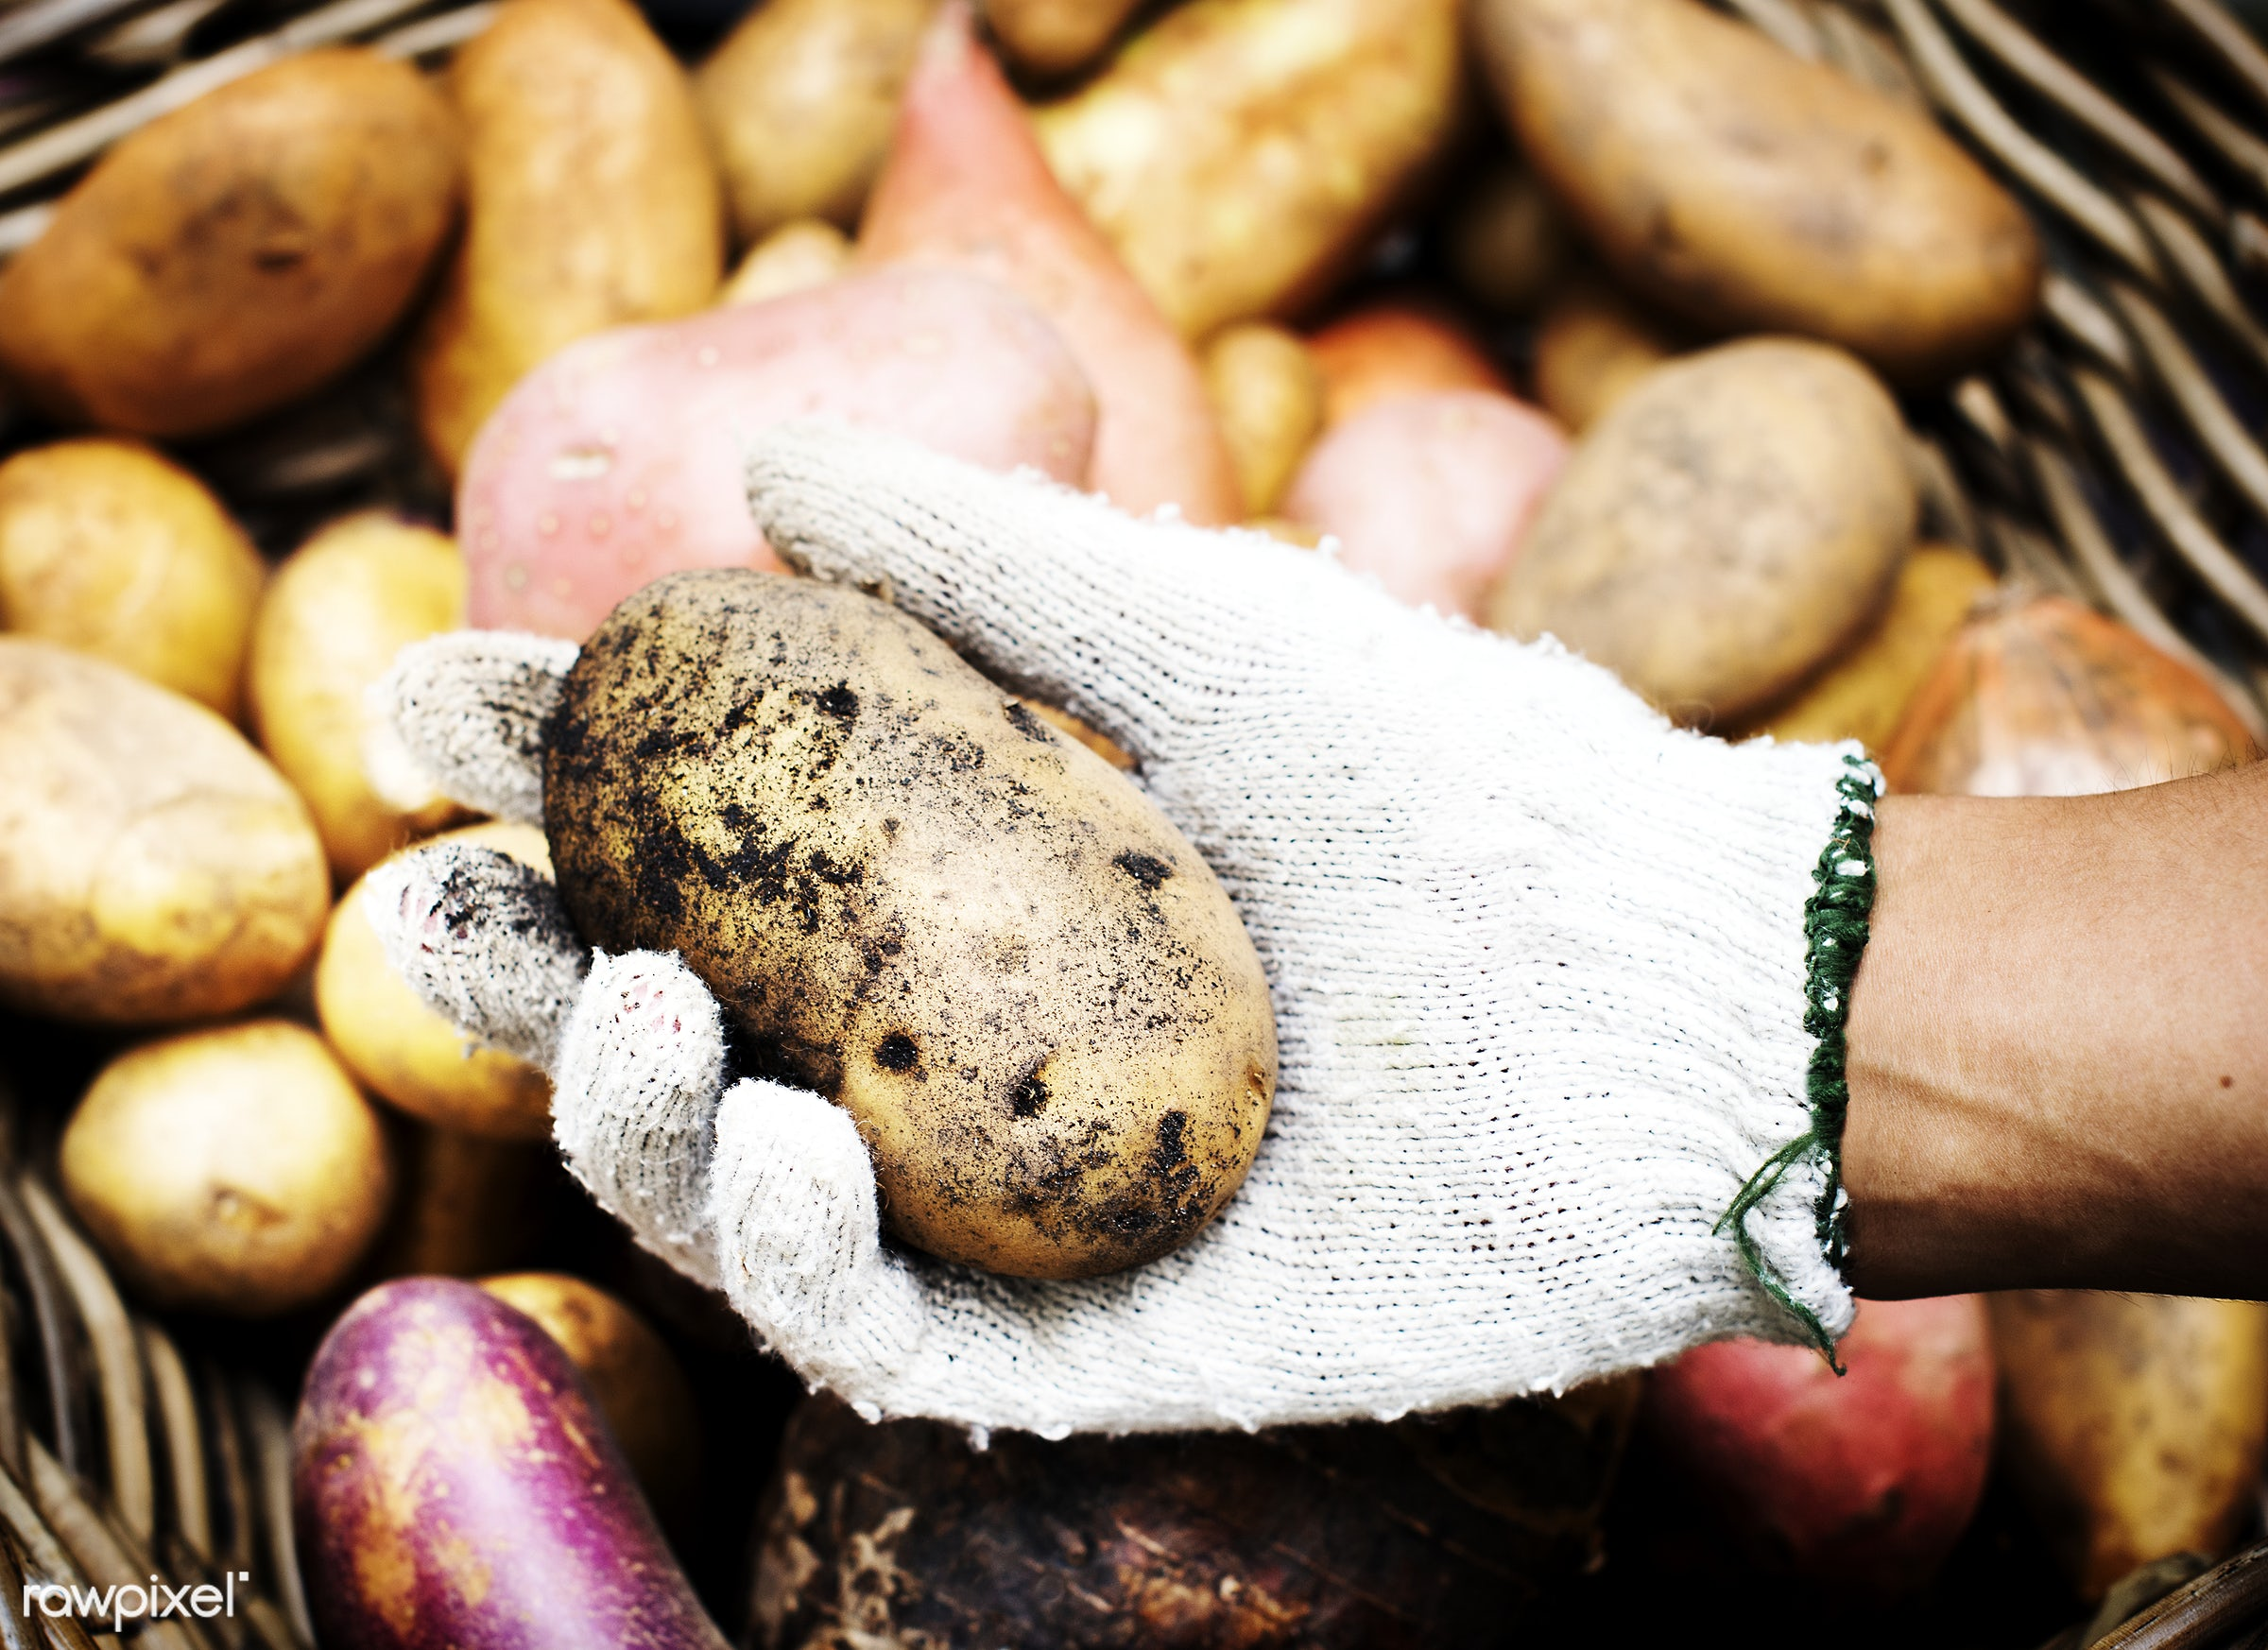 A person handling potatoes - raw, diverse, potatoes, farm, ingredients, farmer, nature, fresh, hands, dirt, products,...